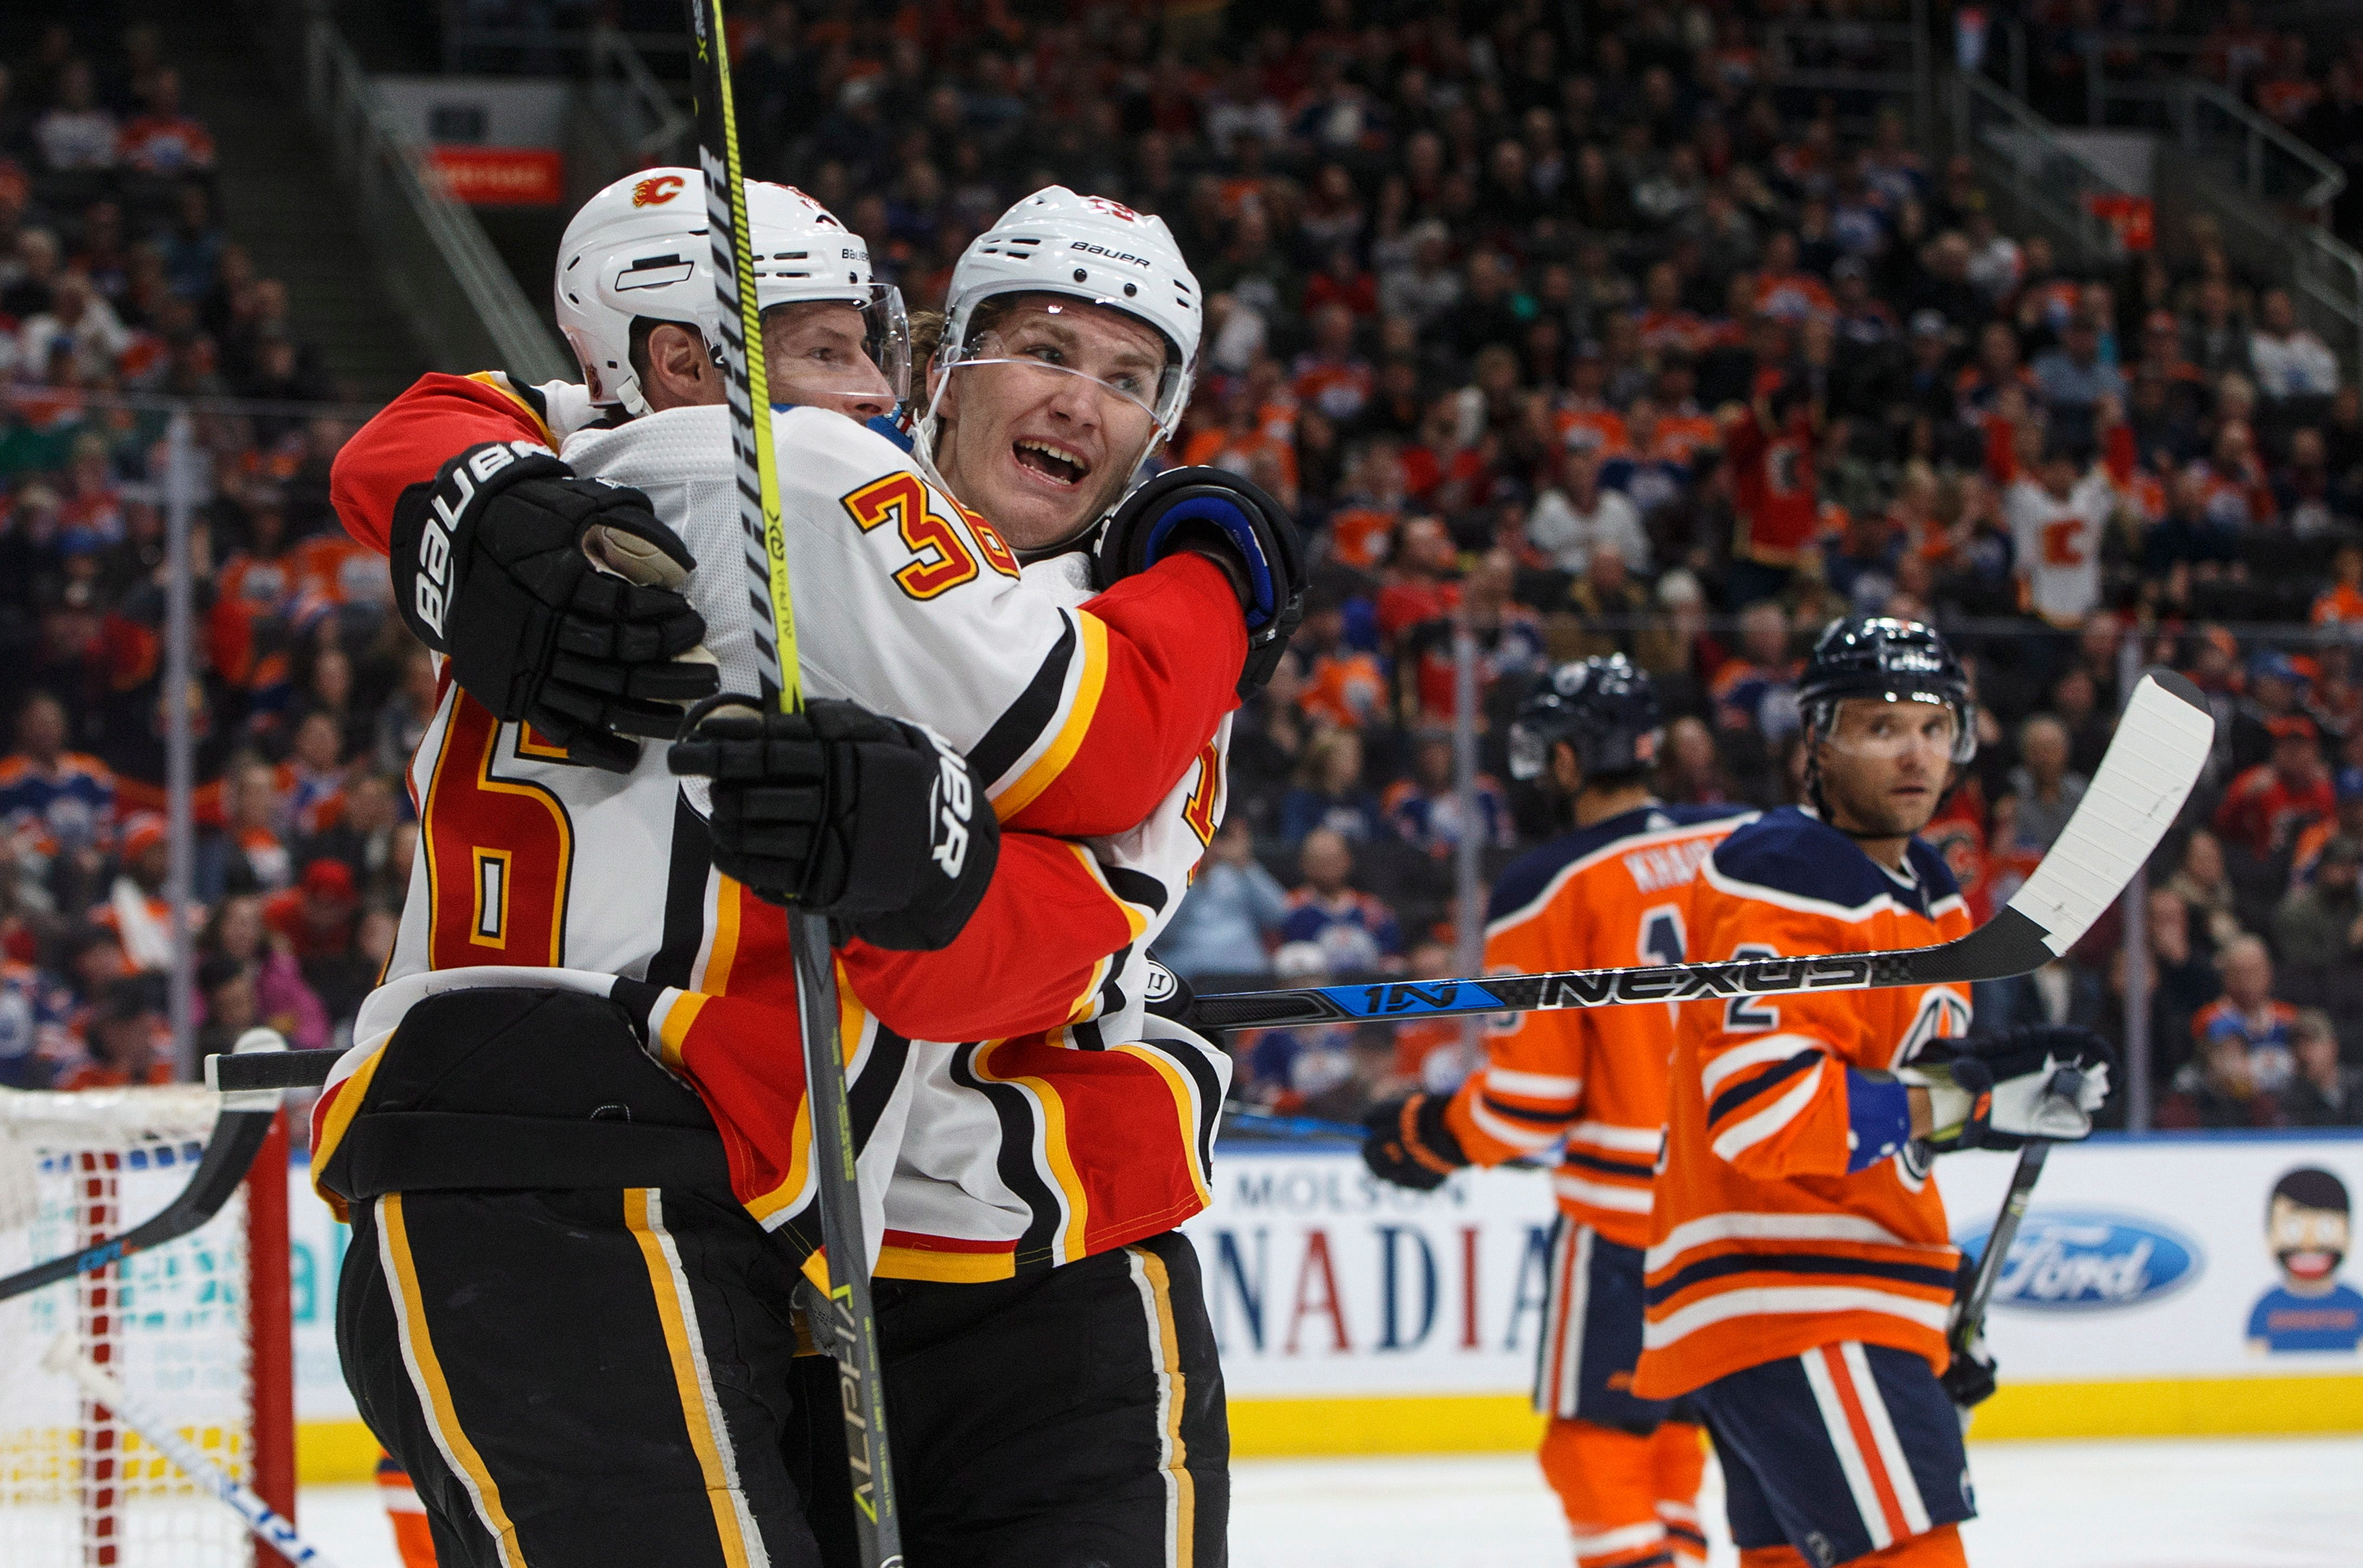 McDavid scores in shootout to lift Oilers over Flames 4-3